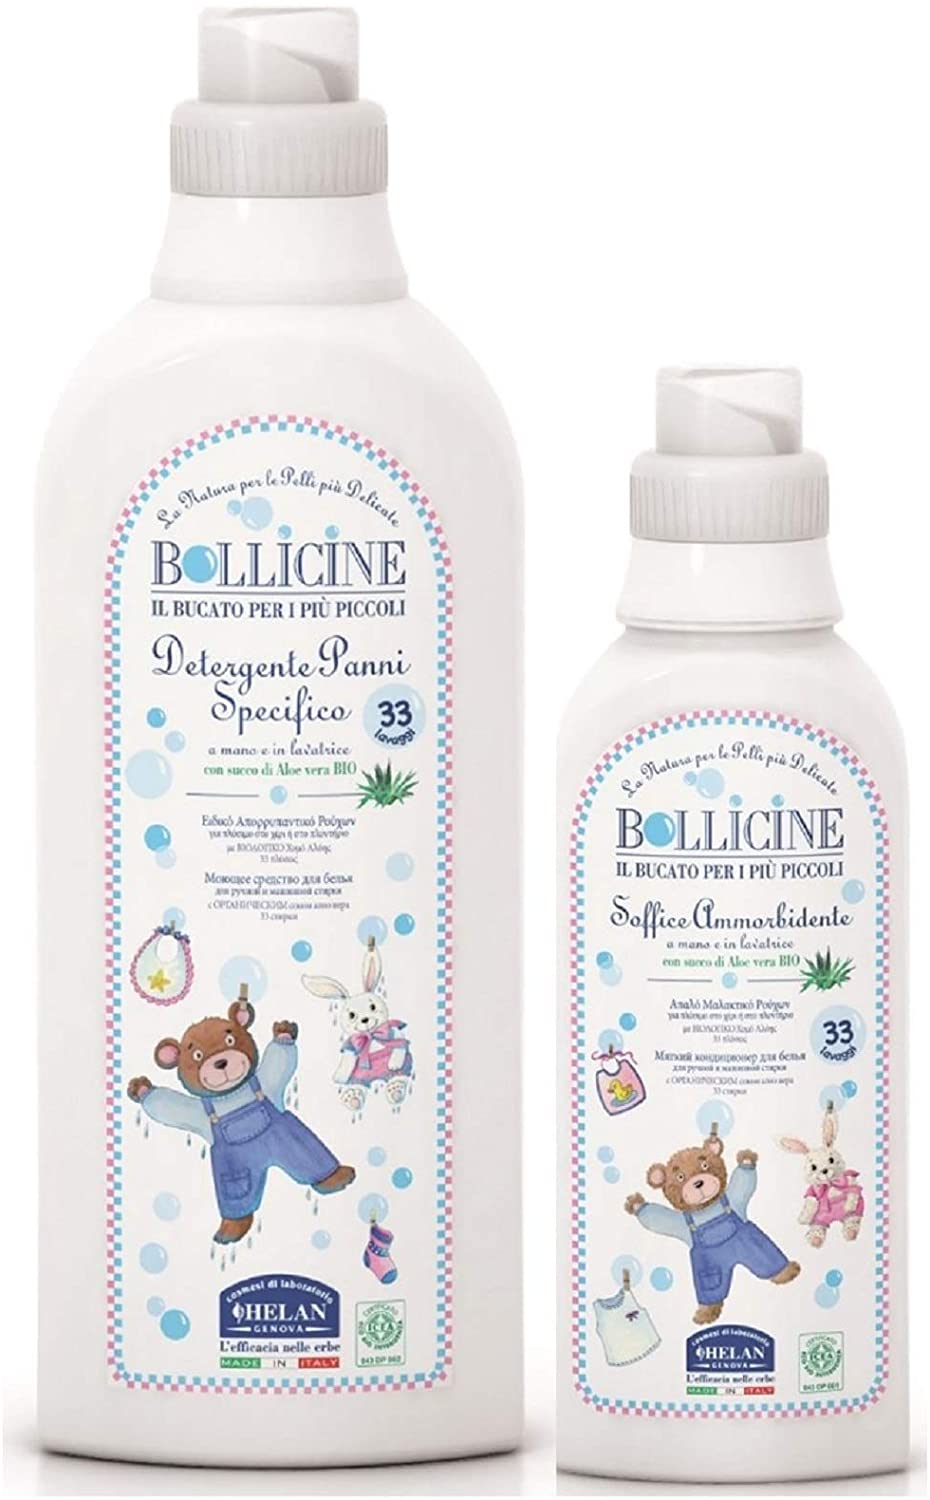 Bollicine Eco Organic Baby Clothes Laundry Liquid Detergent